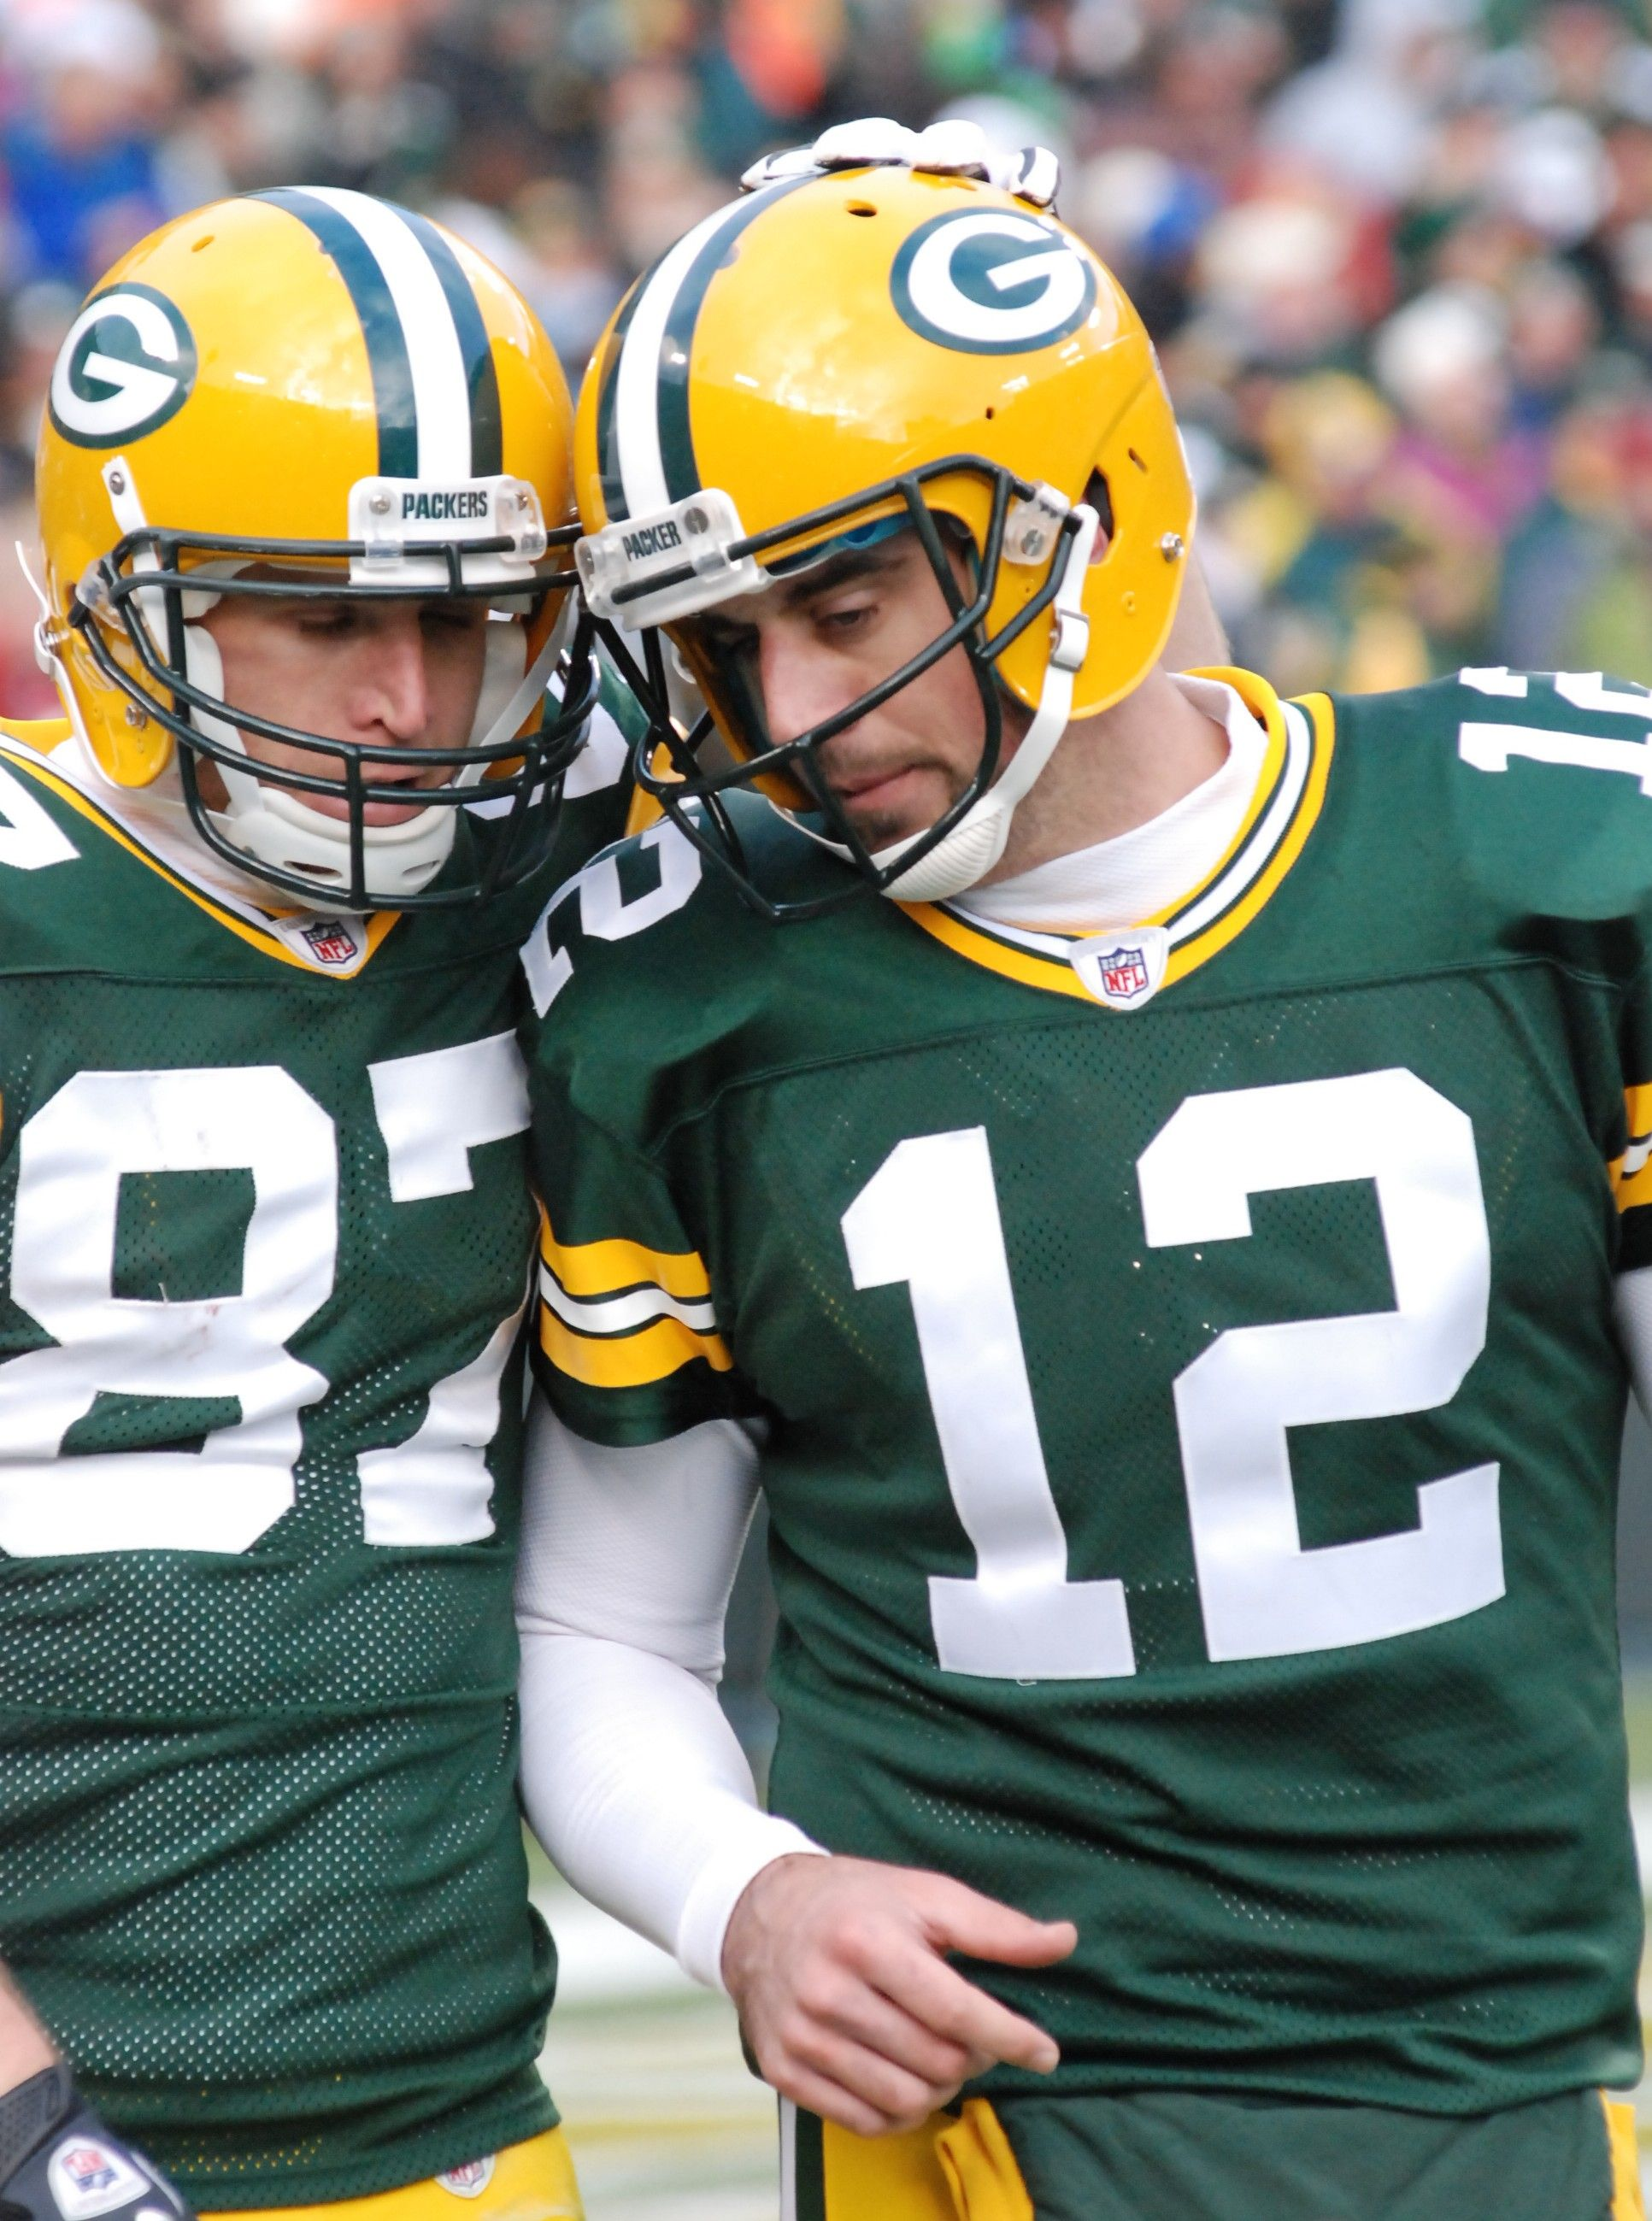 In Honor Of The Oscars Here S My Green Bay Packers Best Pictures Over The Years Green Bay Packers Green Bay Packers Football Packers Football